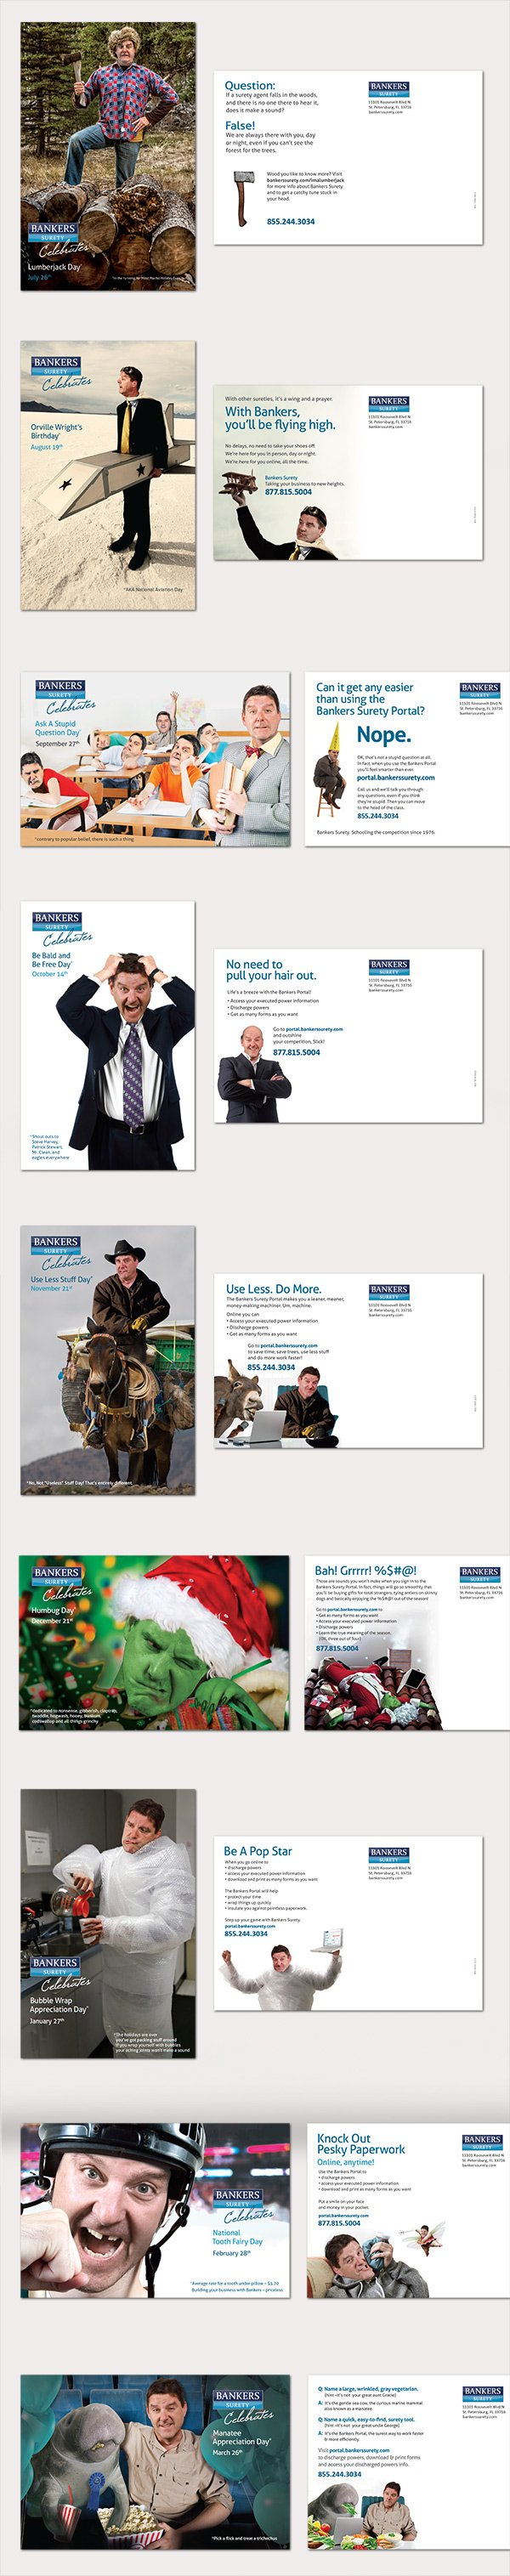 Bankers Surety Postcards